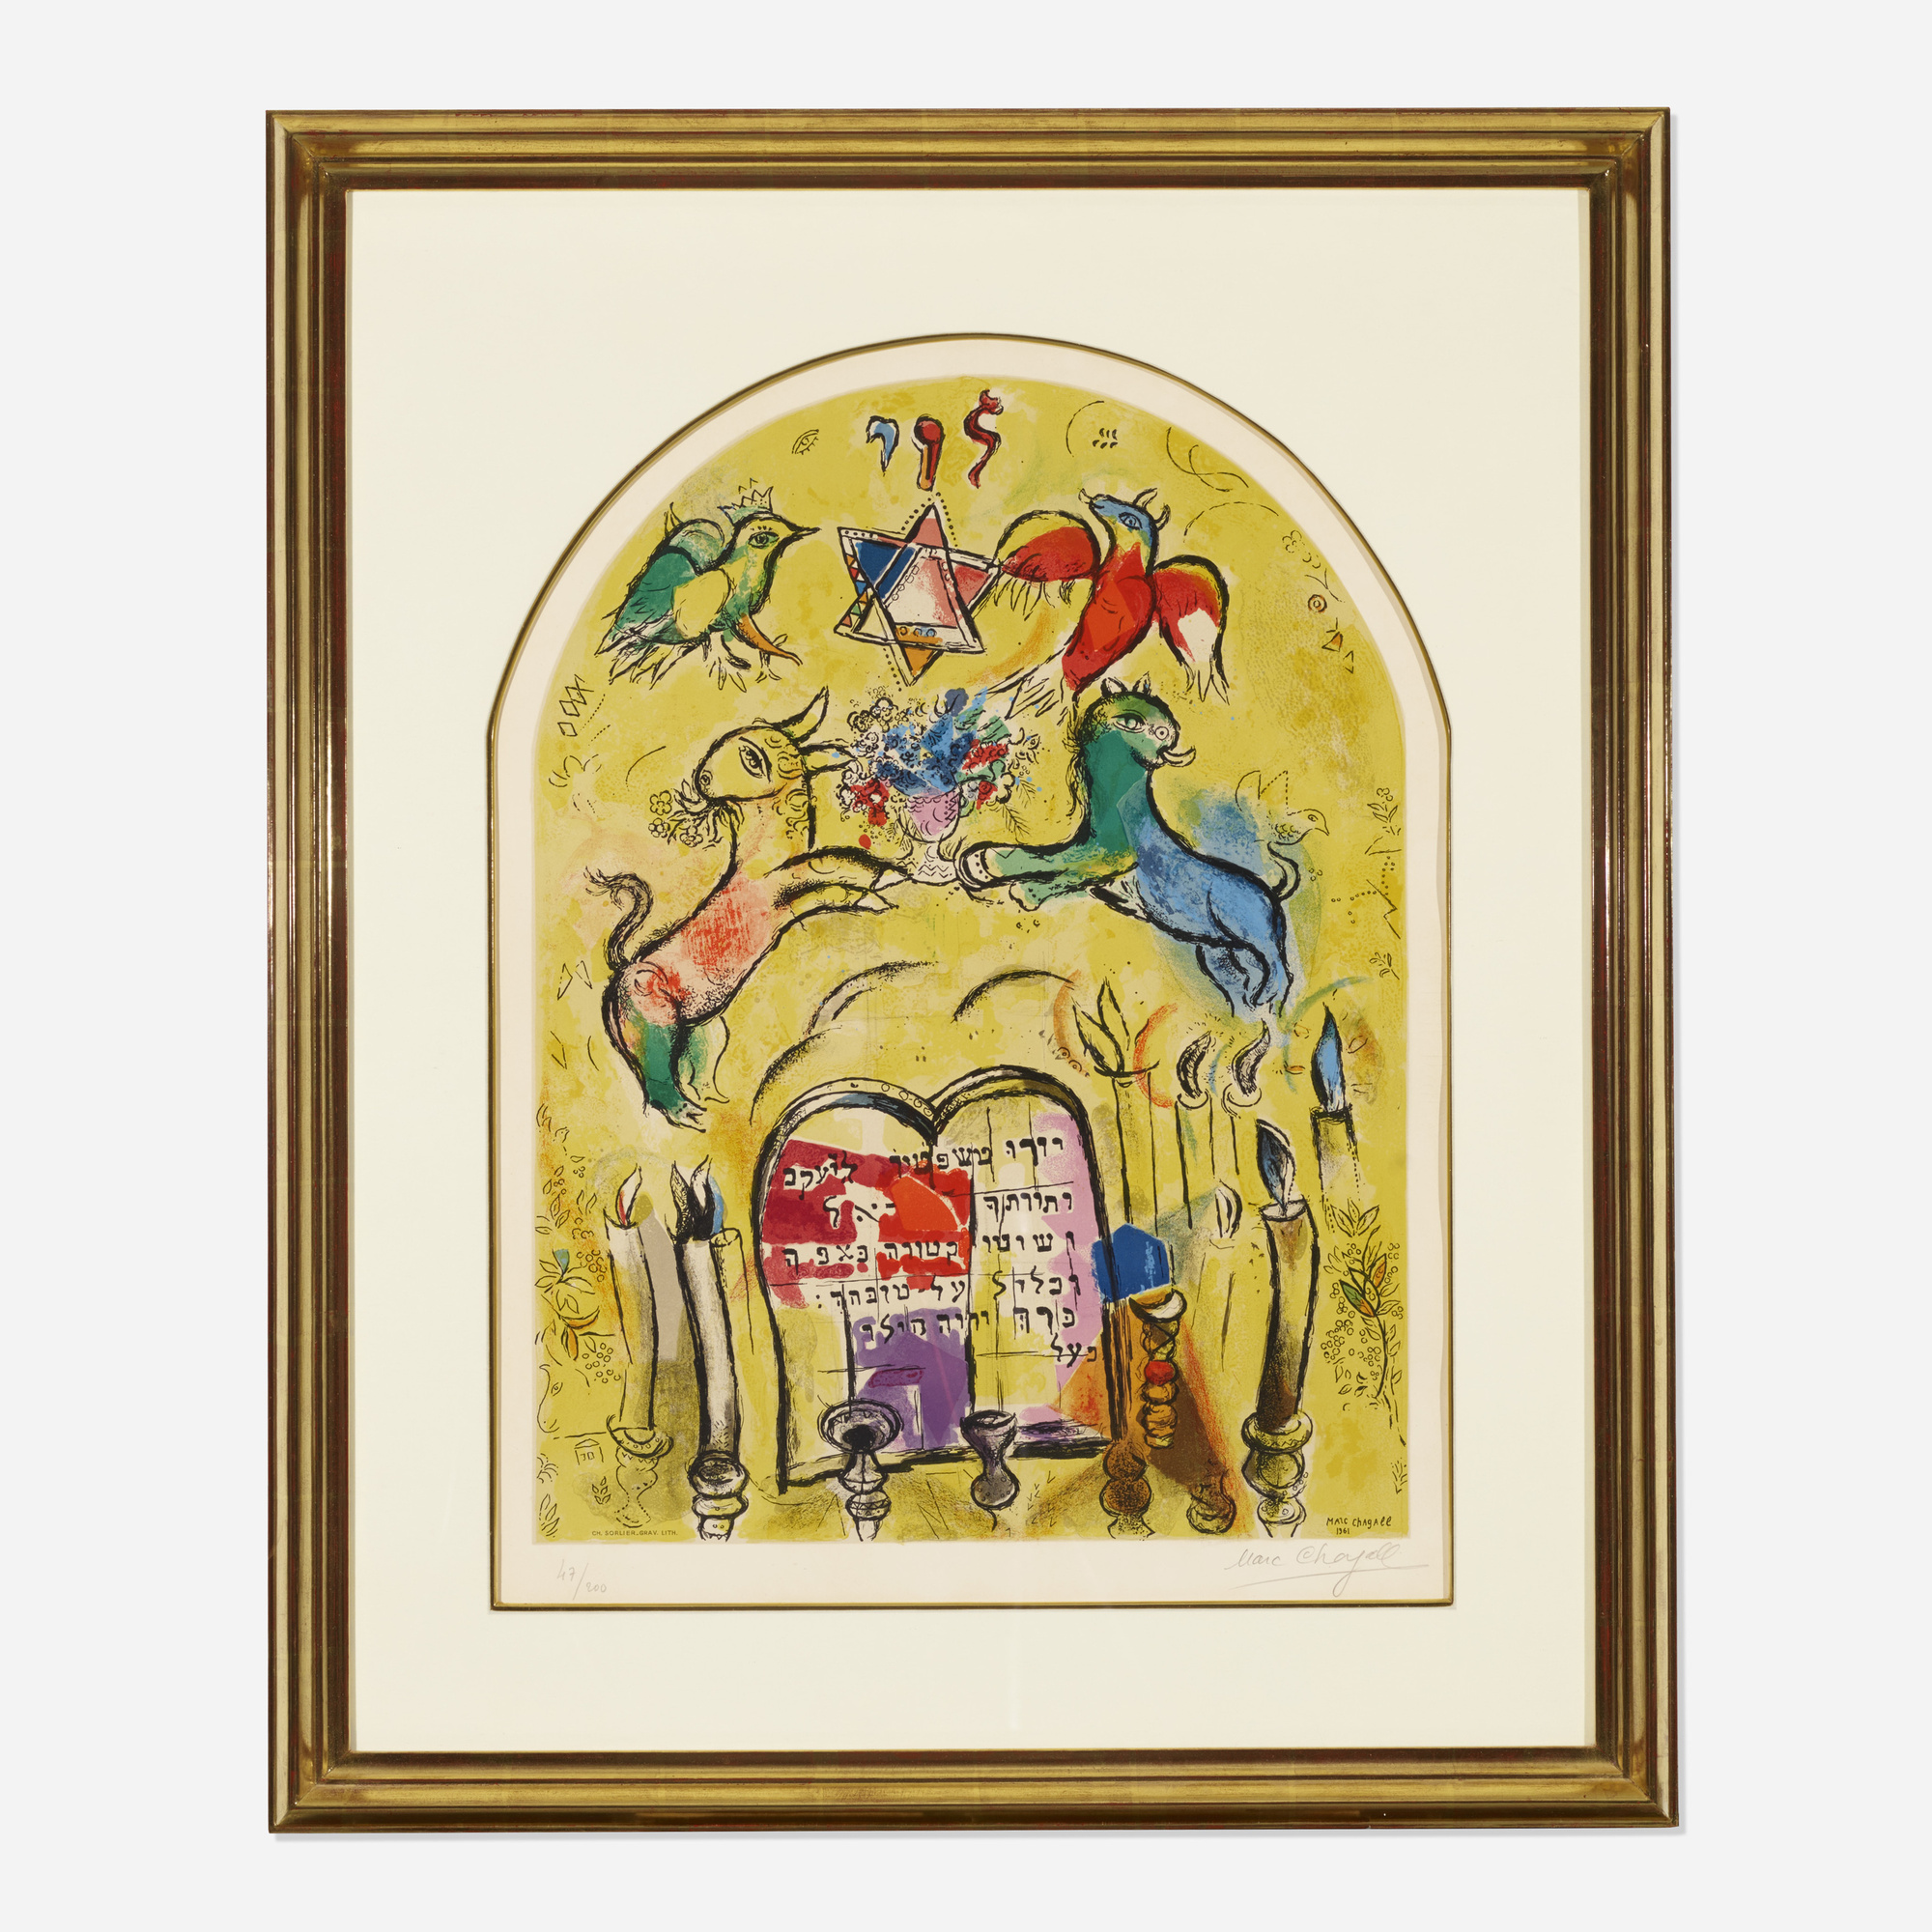 197: Charles Sorlier after Marc Chagall / Tribe of Levi (from Twelve Maquettes of Stained Glass Windows for Jerusalem) (1 of 1)